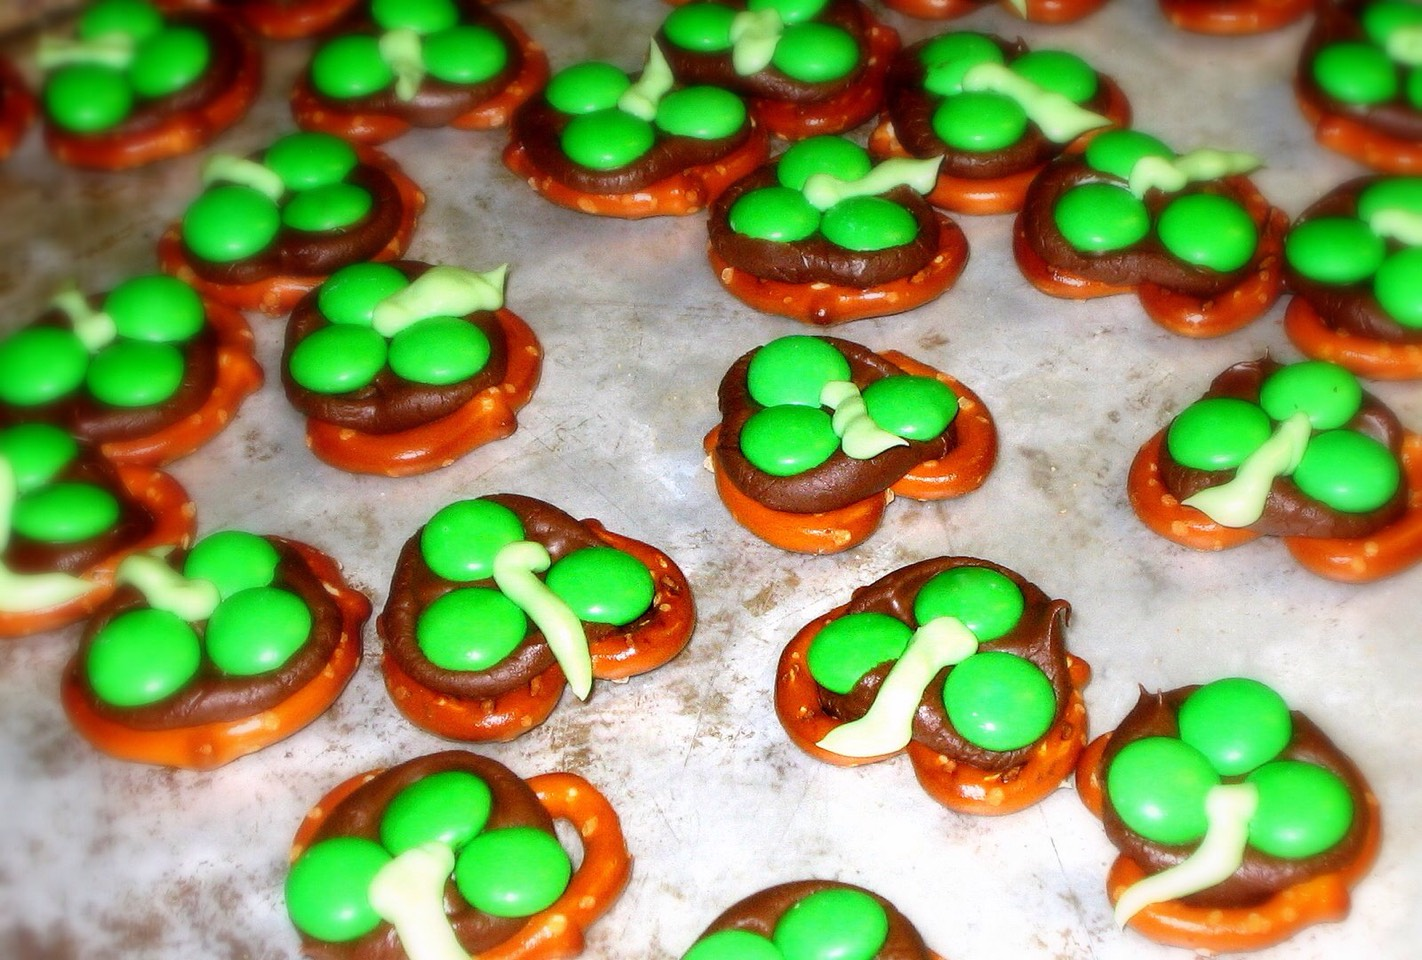 You'll need: -pretzels -Nutella  -green m&ms  Directions: Put pretzel on a plate evenly, put Nutella, on top and place 3 m&ms on the Nutella to make it look like a clover.